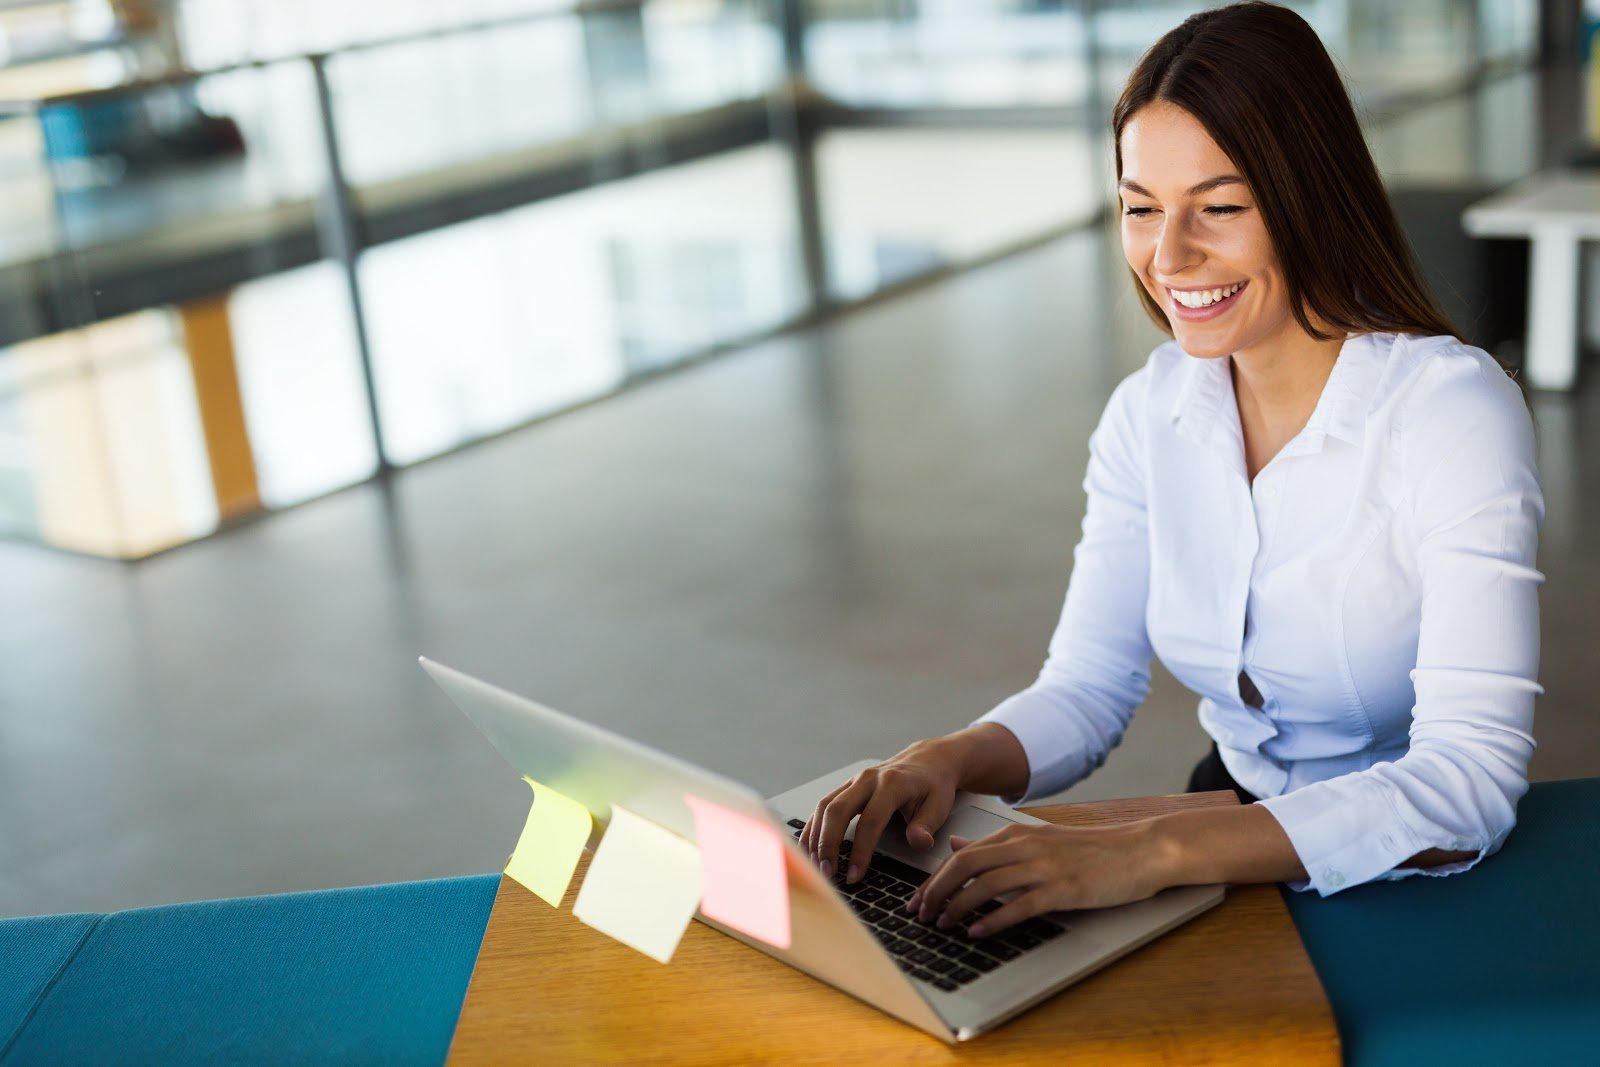 portrait-of-businesswoman-working-on-computer-in-9AXP6MC